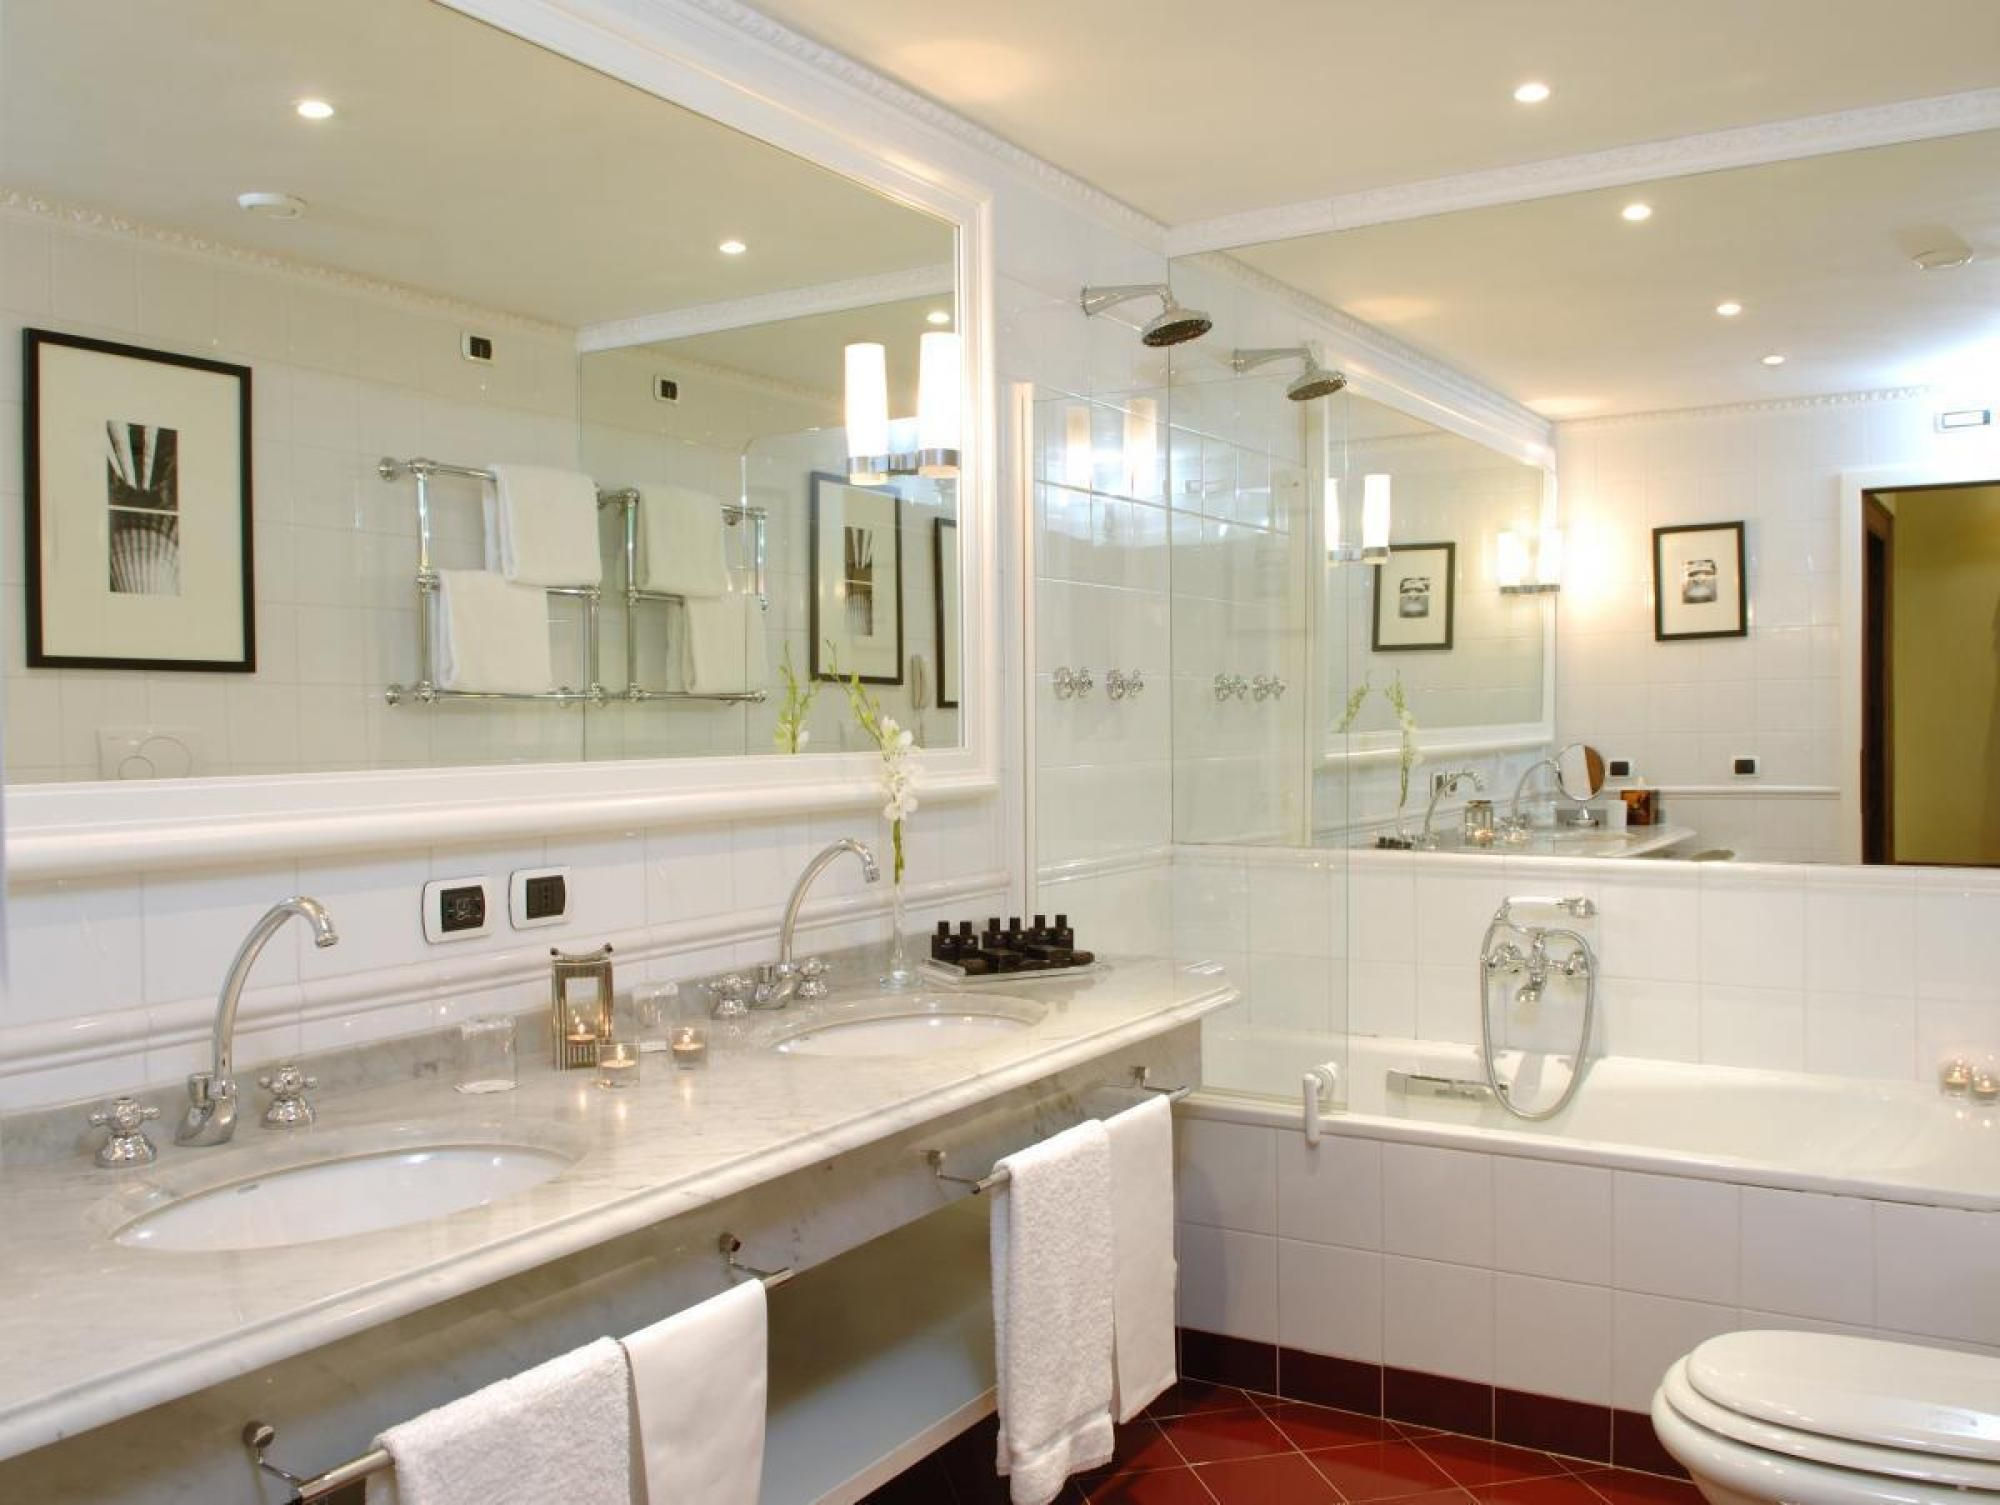 Adorable Luxury Bathroom Style With White Granite